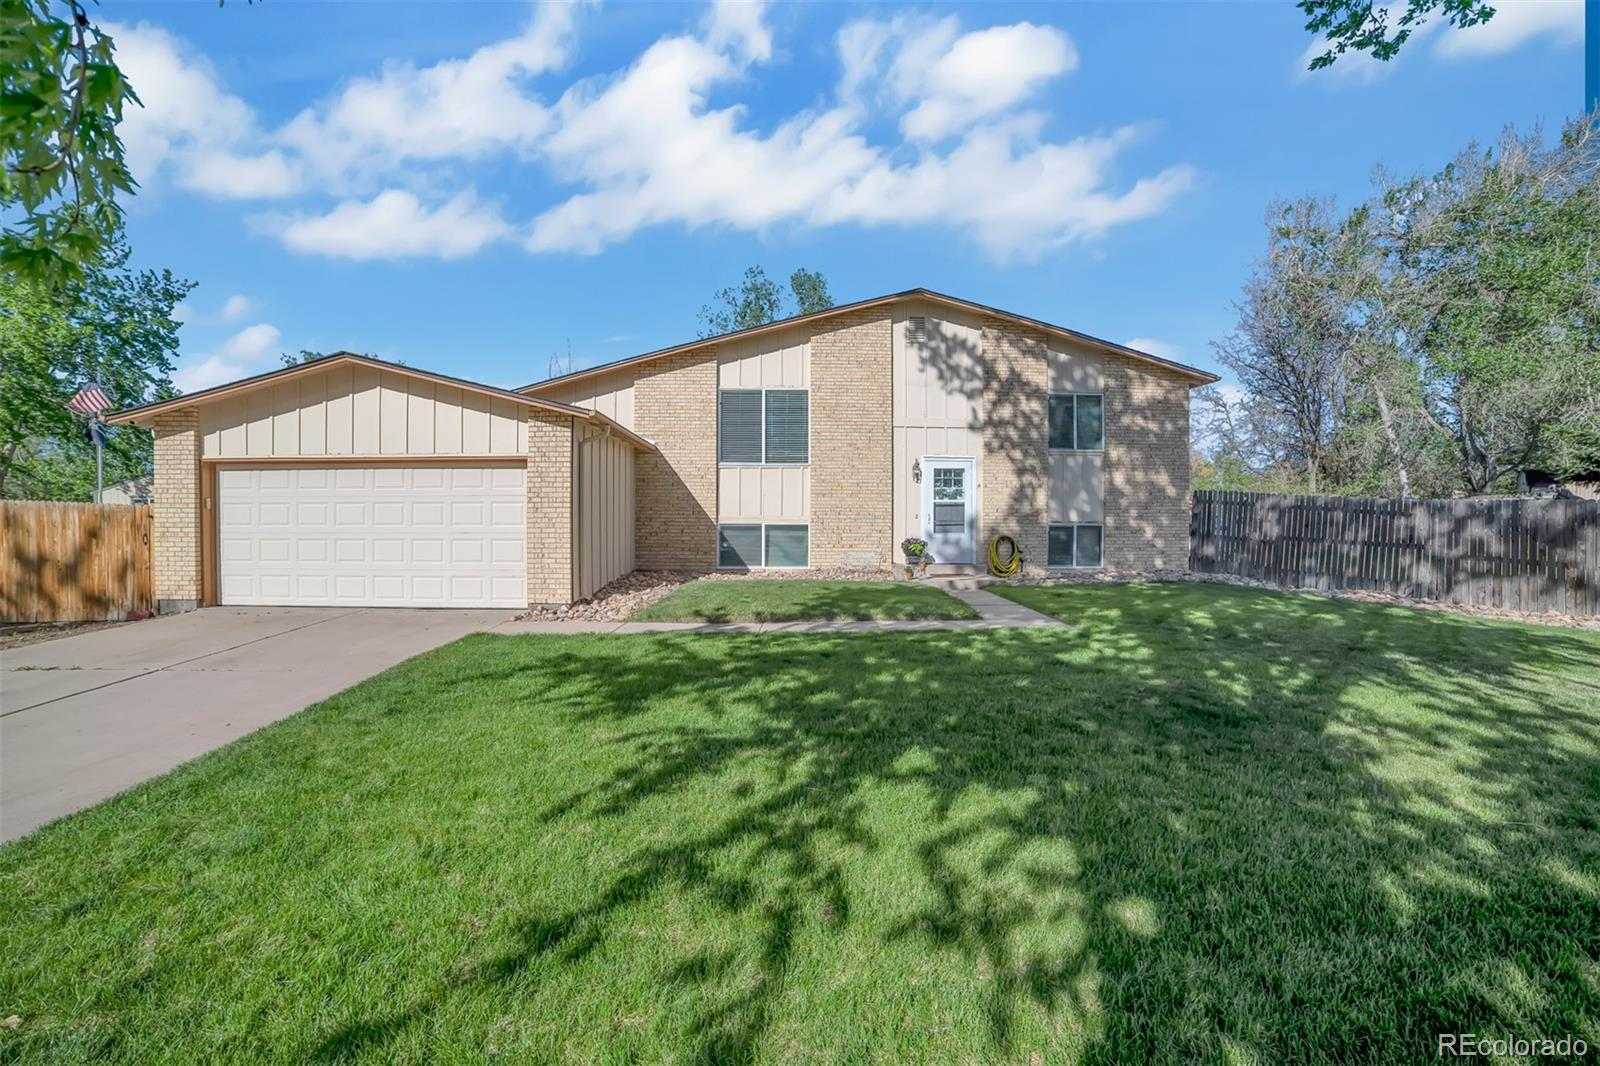 3170 S Mobile Way Property Photo - Aurora, CO real estate listing